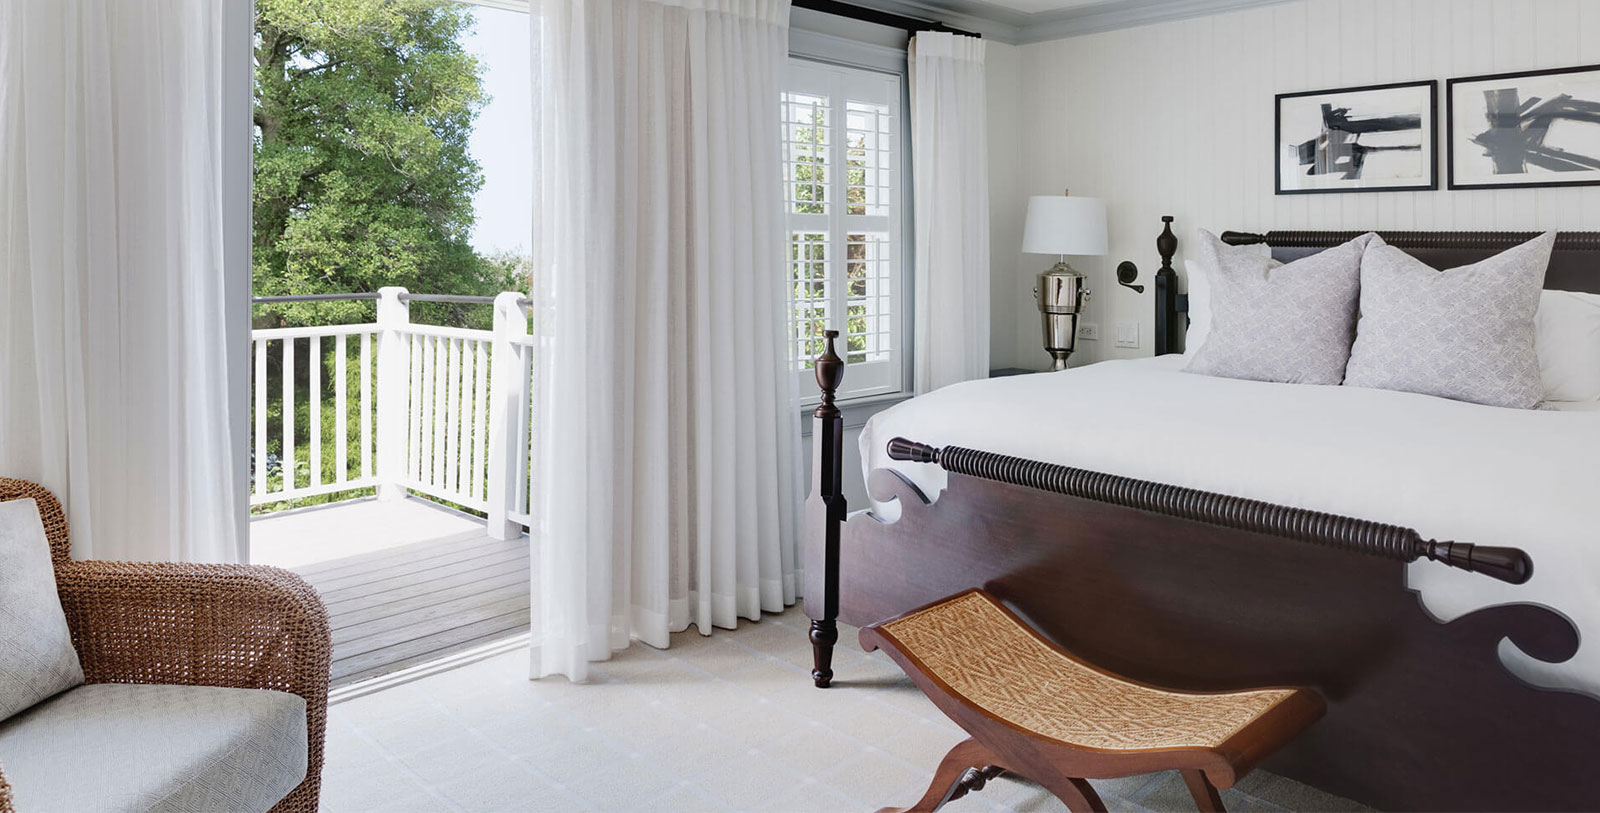 Image of Guestroom Interior, Inn at Perry Cabin in St. Michaels, Maryland, 1816, Member of Historic Hotels of America, Accommodations